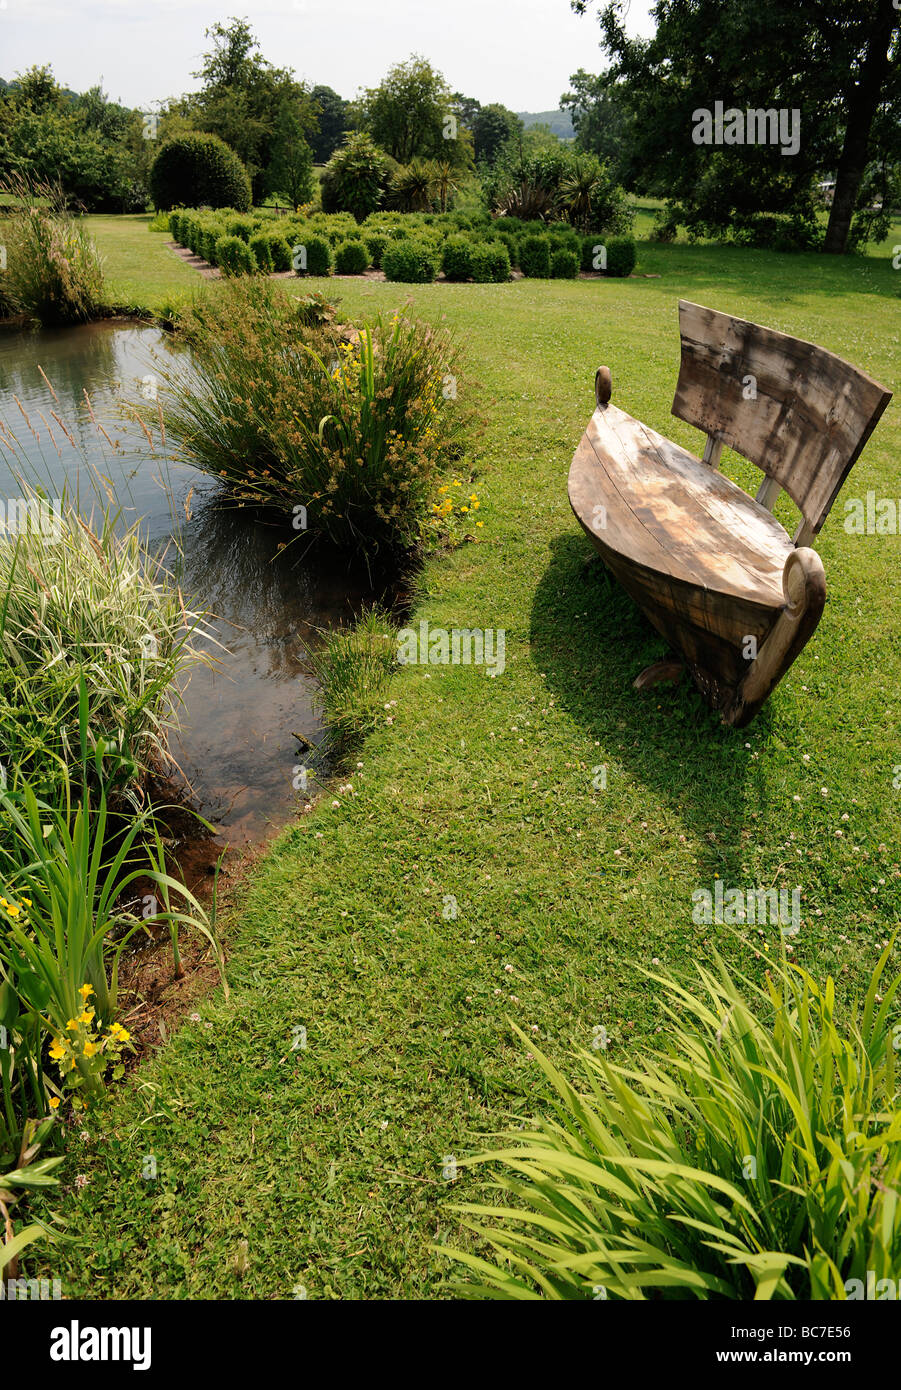 Boat shaped seat by the lake of a landscaped English Garden in Stoberry Park, Somerset, UK - Stock Image